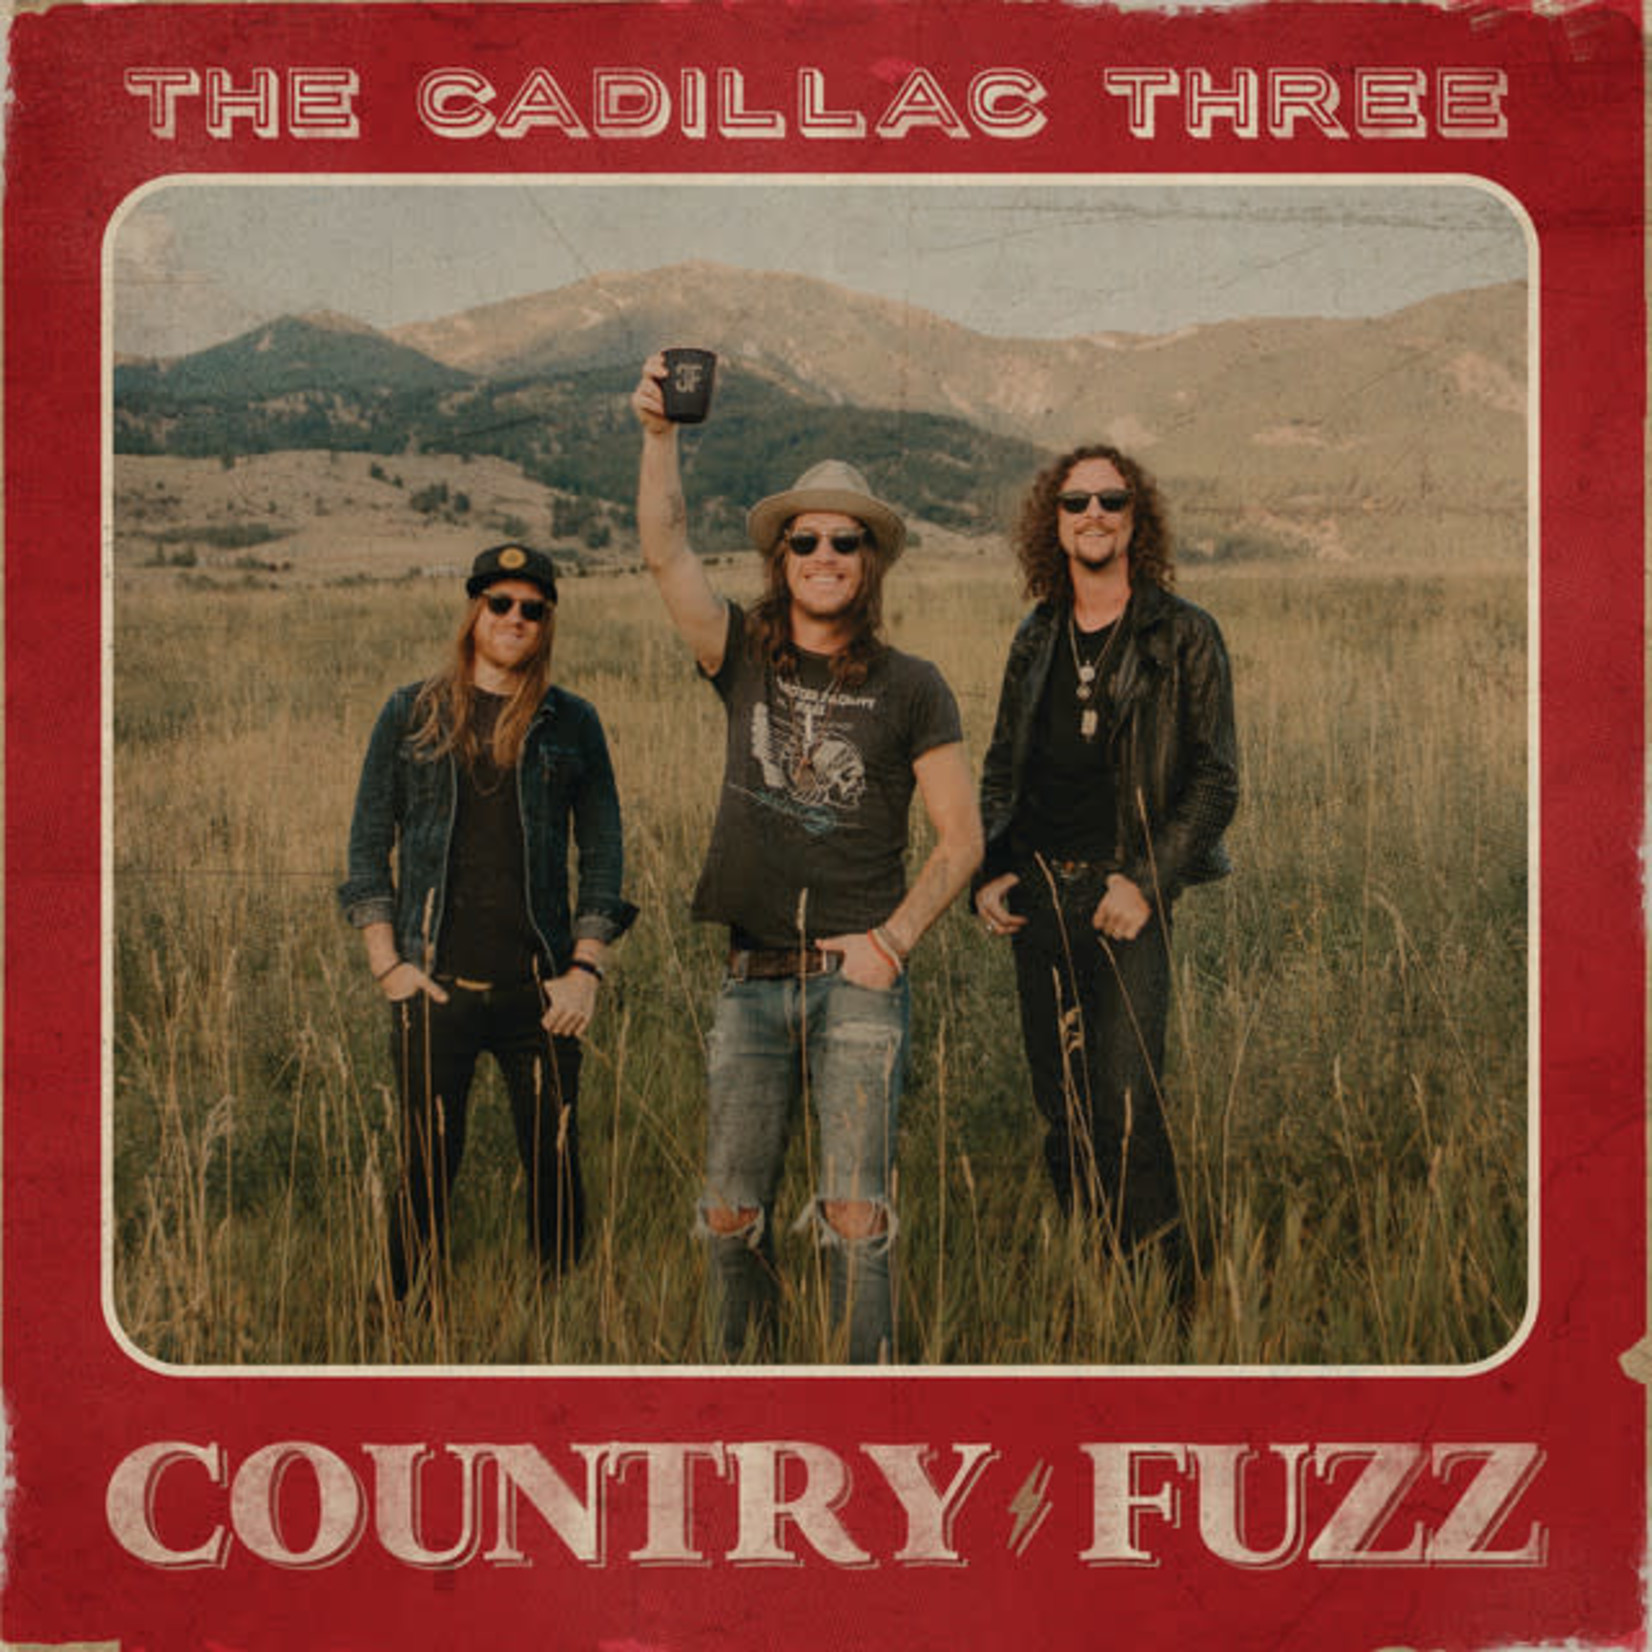 Vinyl The Cadillac Three - Country Fuzz.  Final Sale